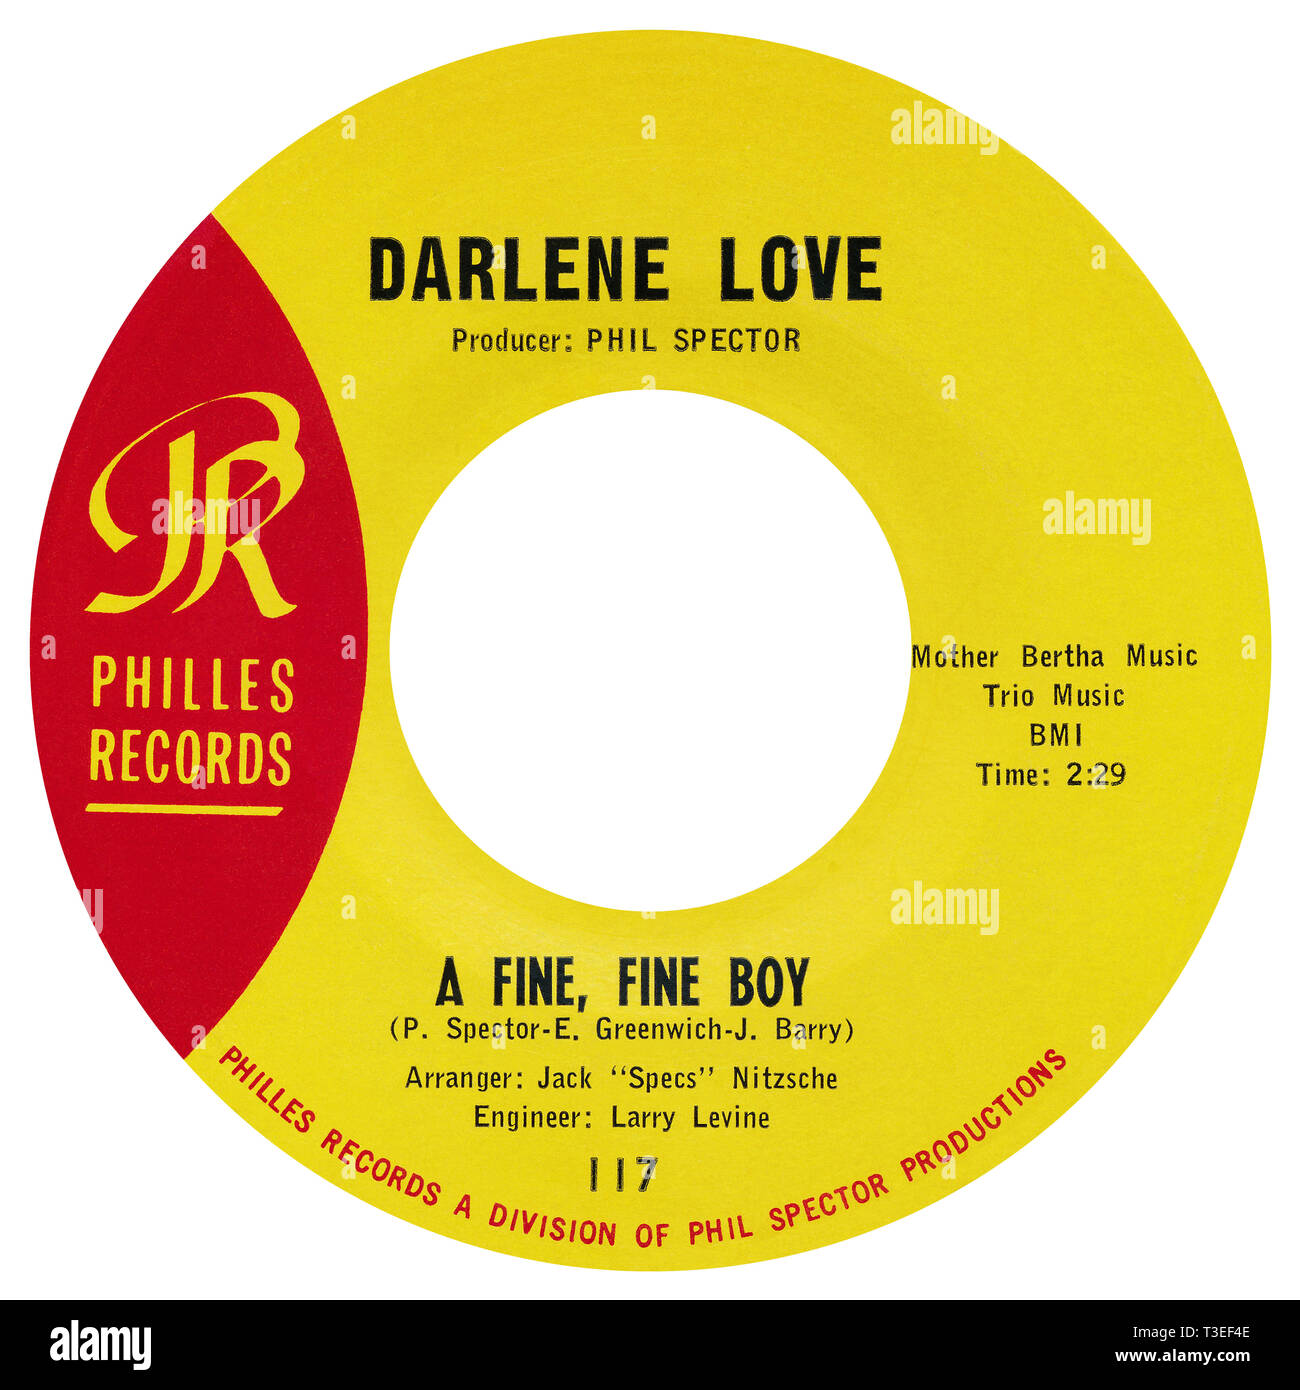 US 45 rpm single of A Fine, Fine Boy by Darlene Love on the Philles label from 1963. Written by Phil Spector, Ellie Greenwich and Jeff Barry, produced by Phil Spector and arranged by Jack Nitzsche. Stock Photo